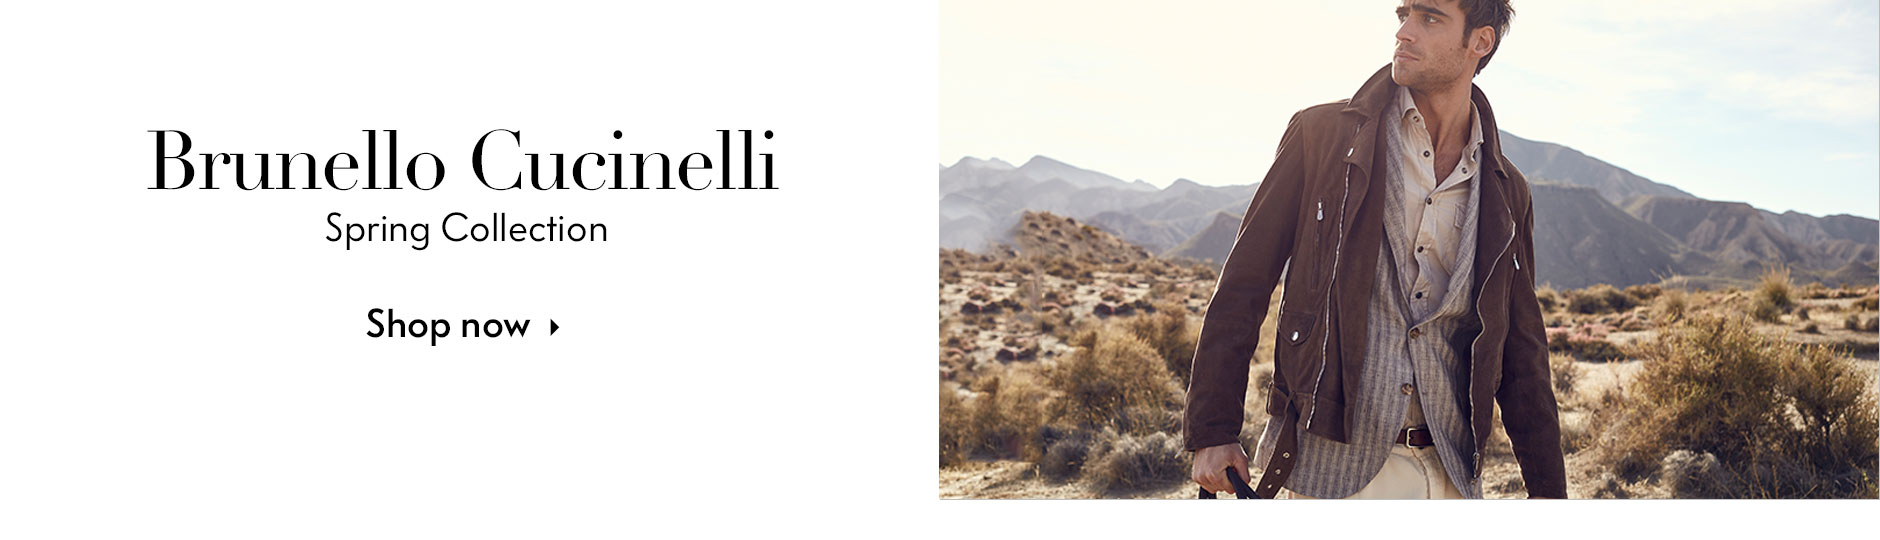 Upclose Brunello Cucinelli Lookbook